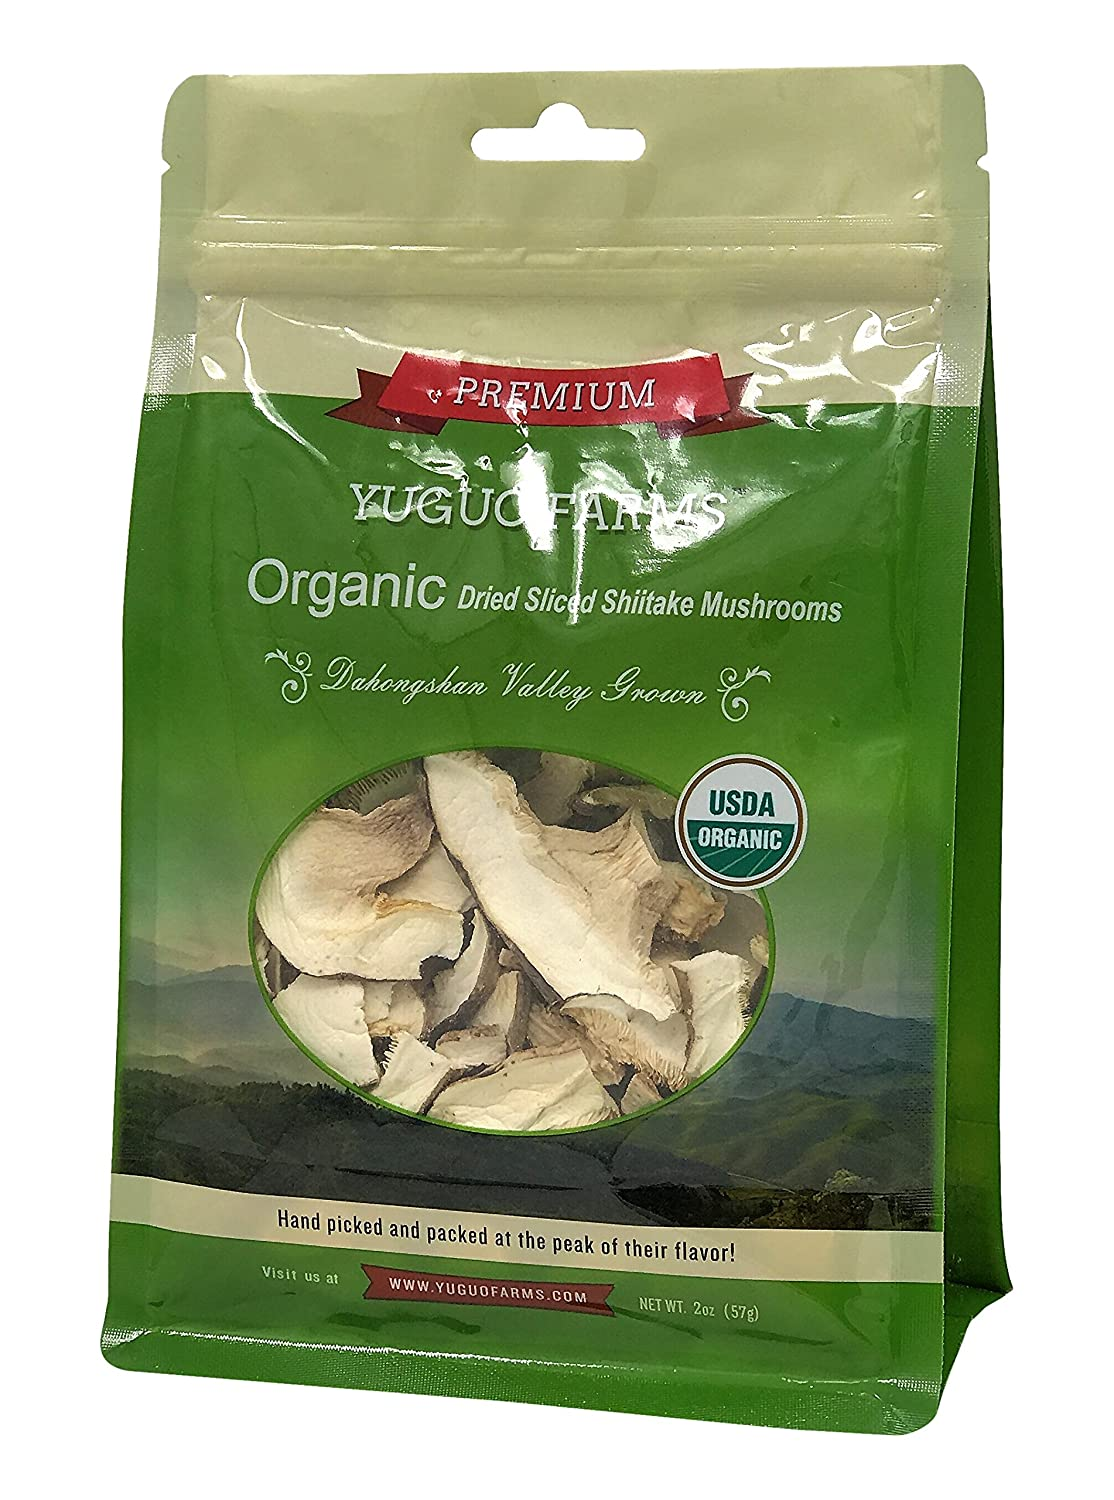 Yuguo Farms Dried Sliced Shiitake Mushrooms Certified USDA Organic, 100% Naturally Grown, NON-GMO, 2oz bag